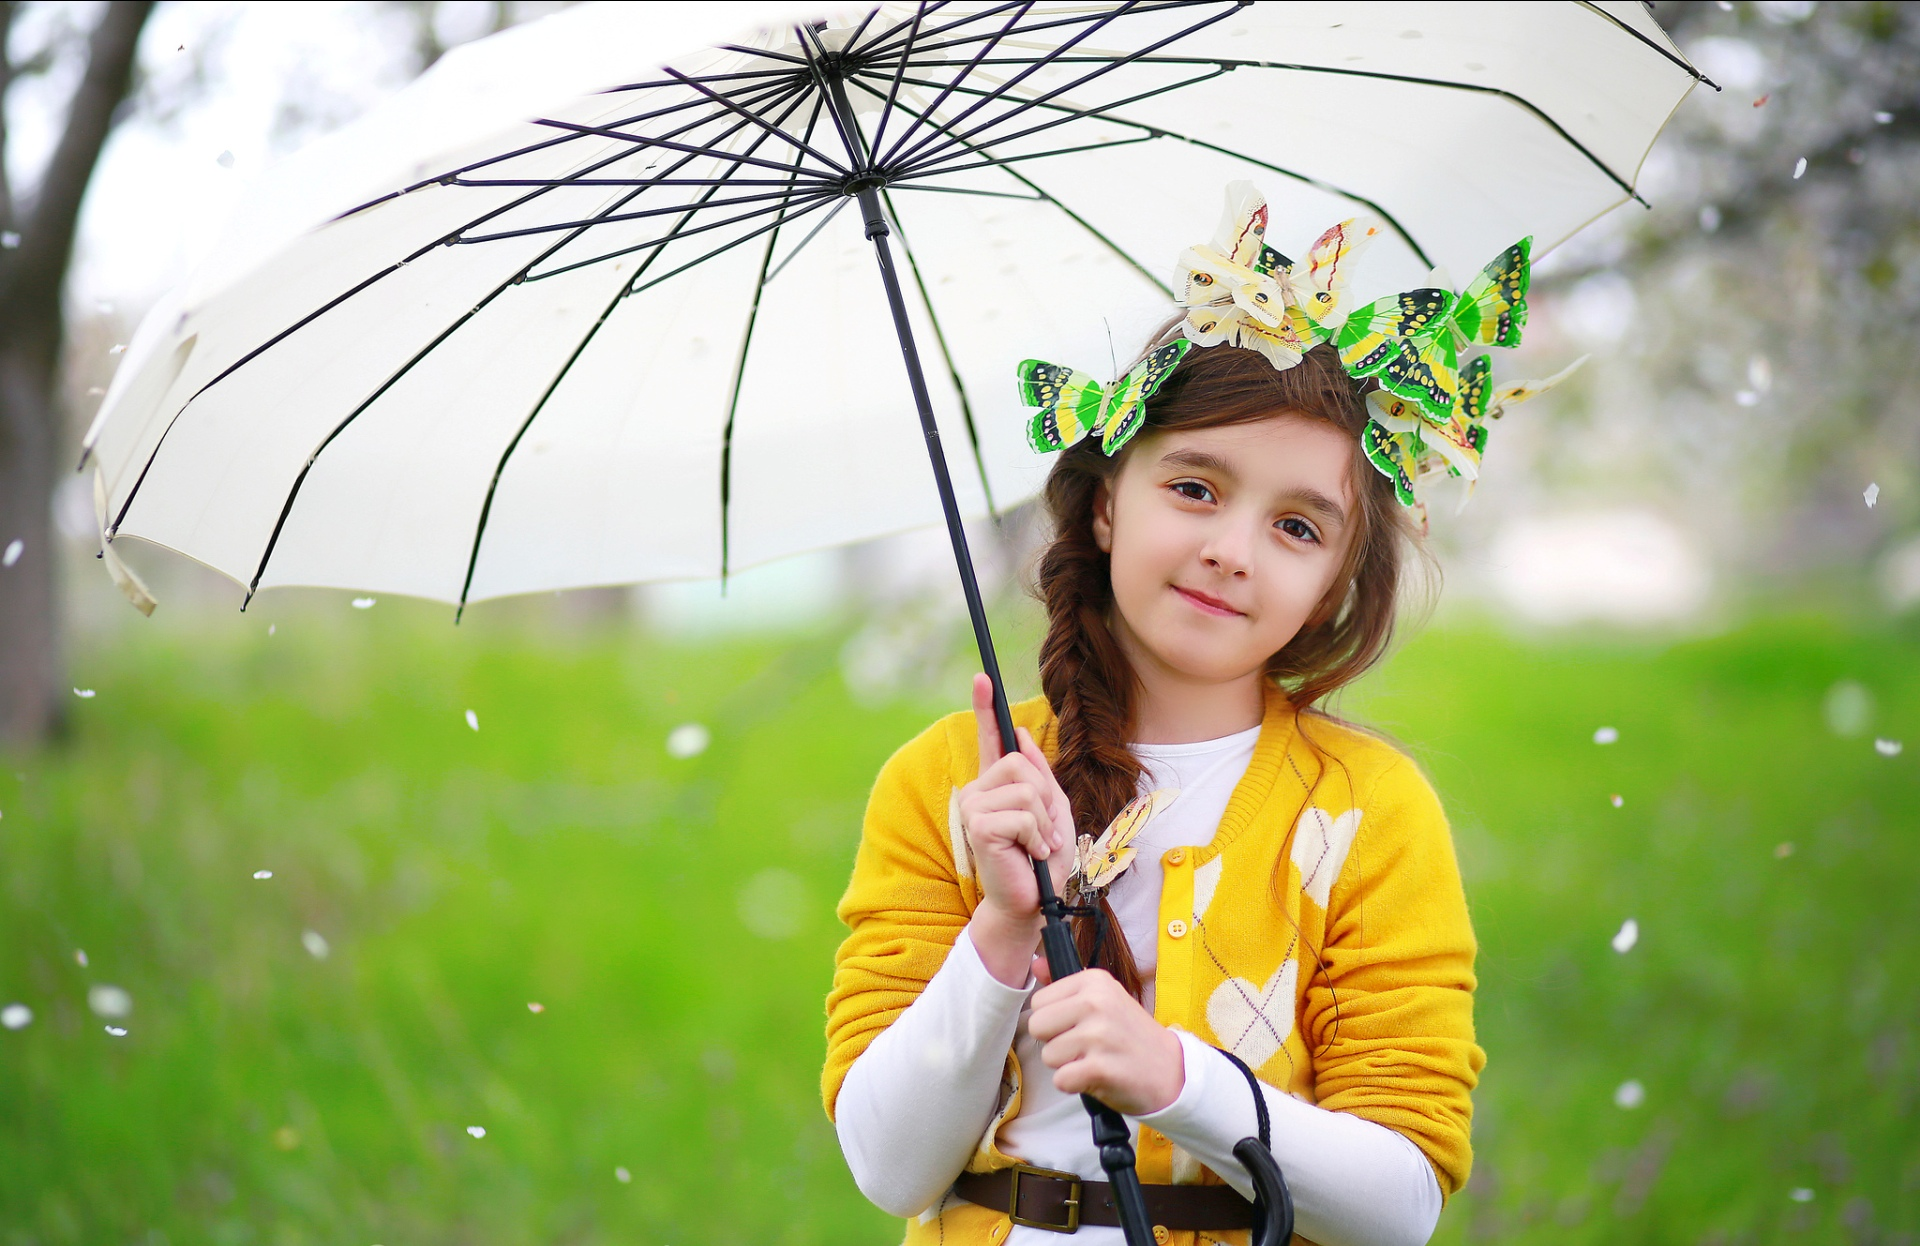 Cute baby with white umbrella 1920 x 1246 download close